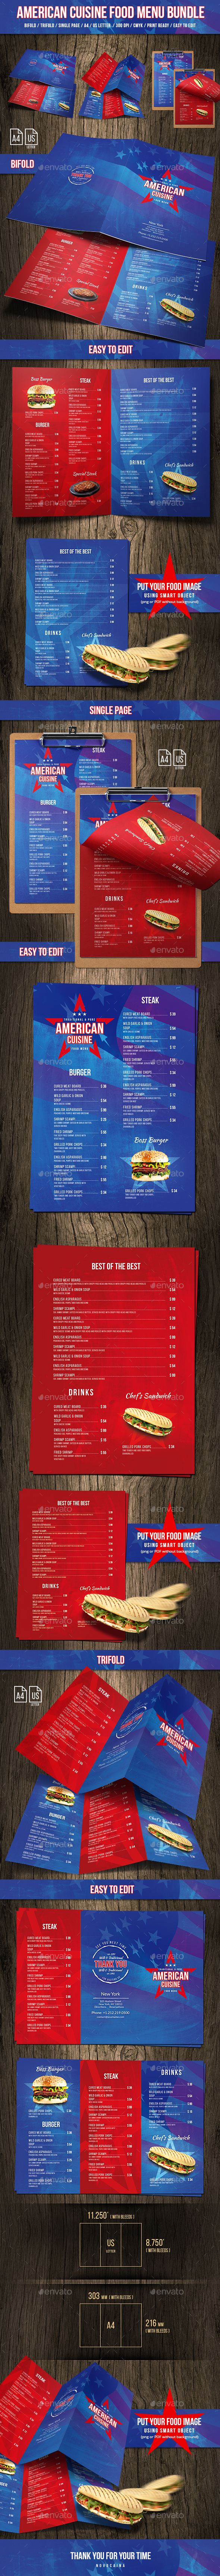 American Cuisine Food Menu Bundle - Food Menus Print Templates